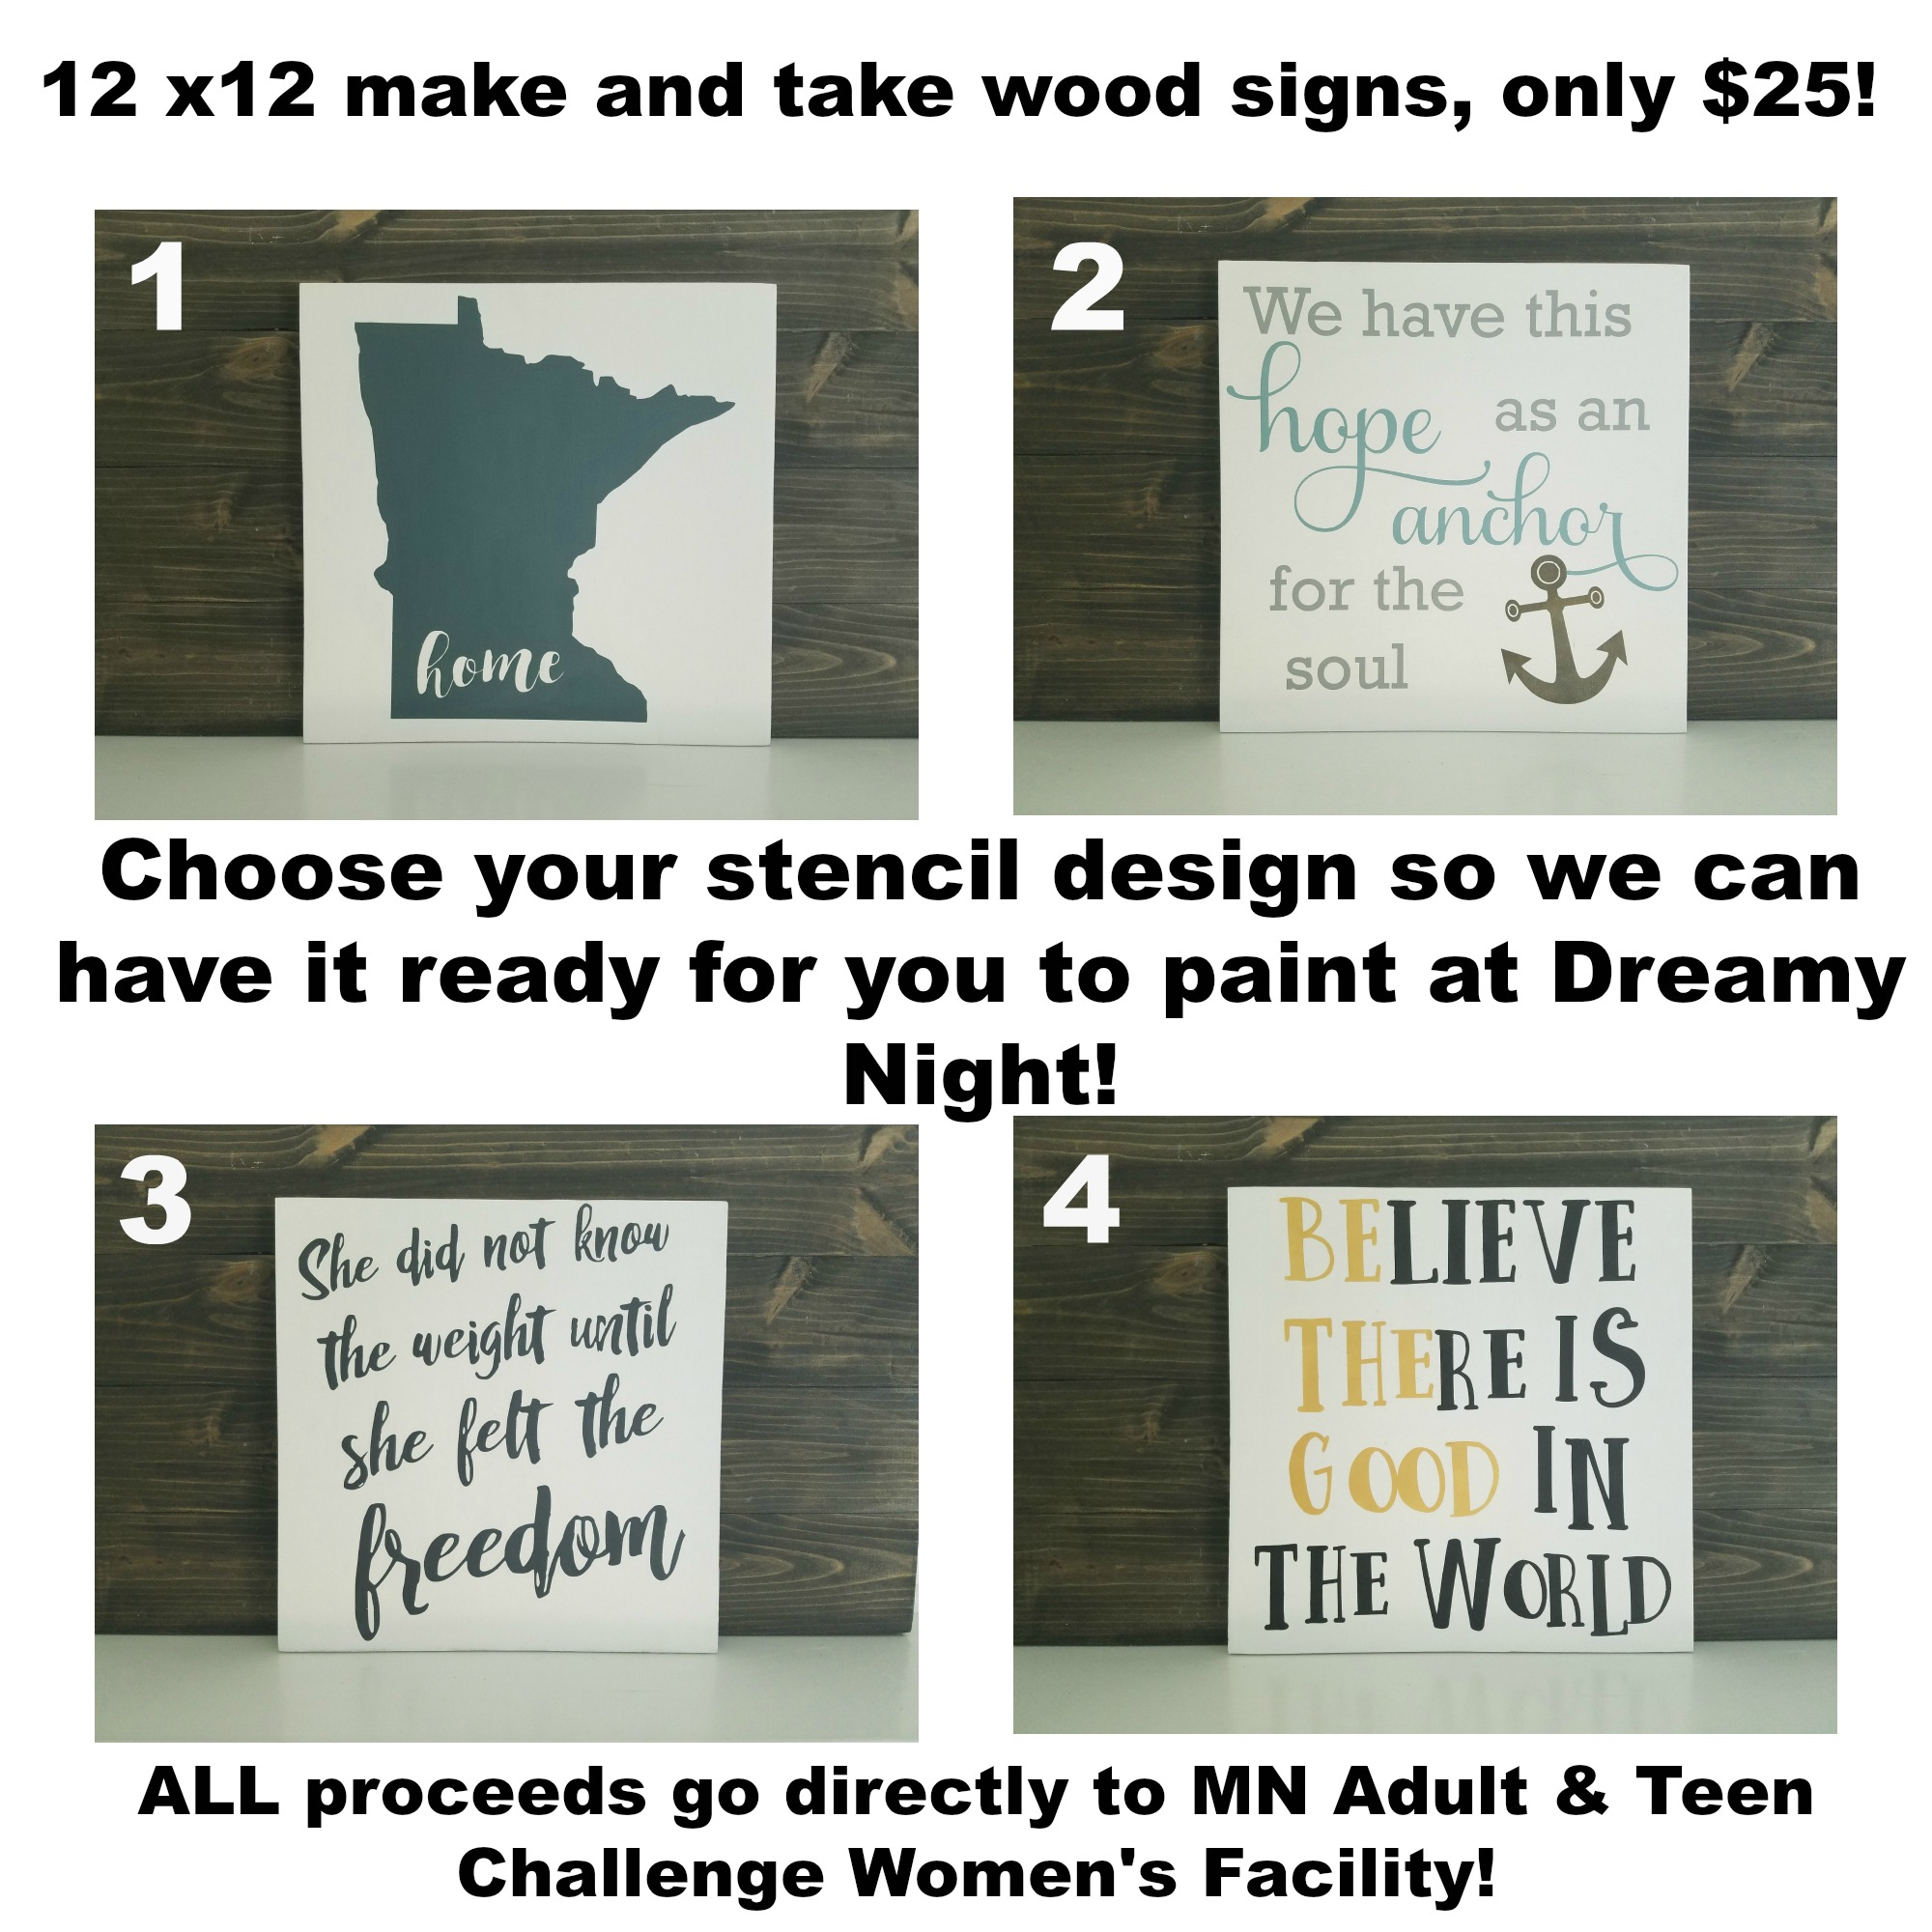 12x12 Wood Signs, Make & Take